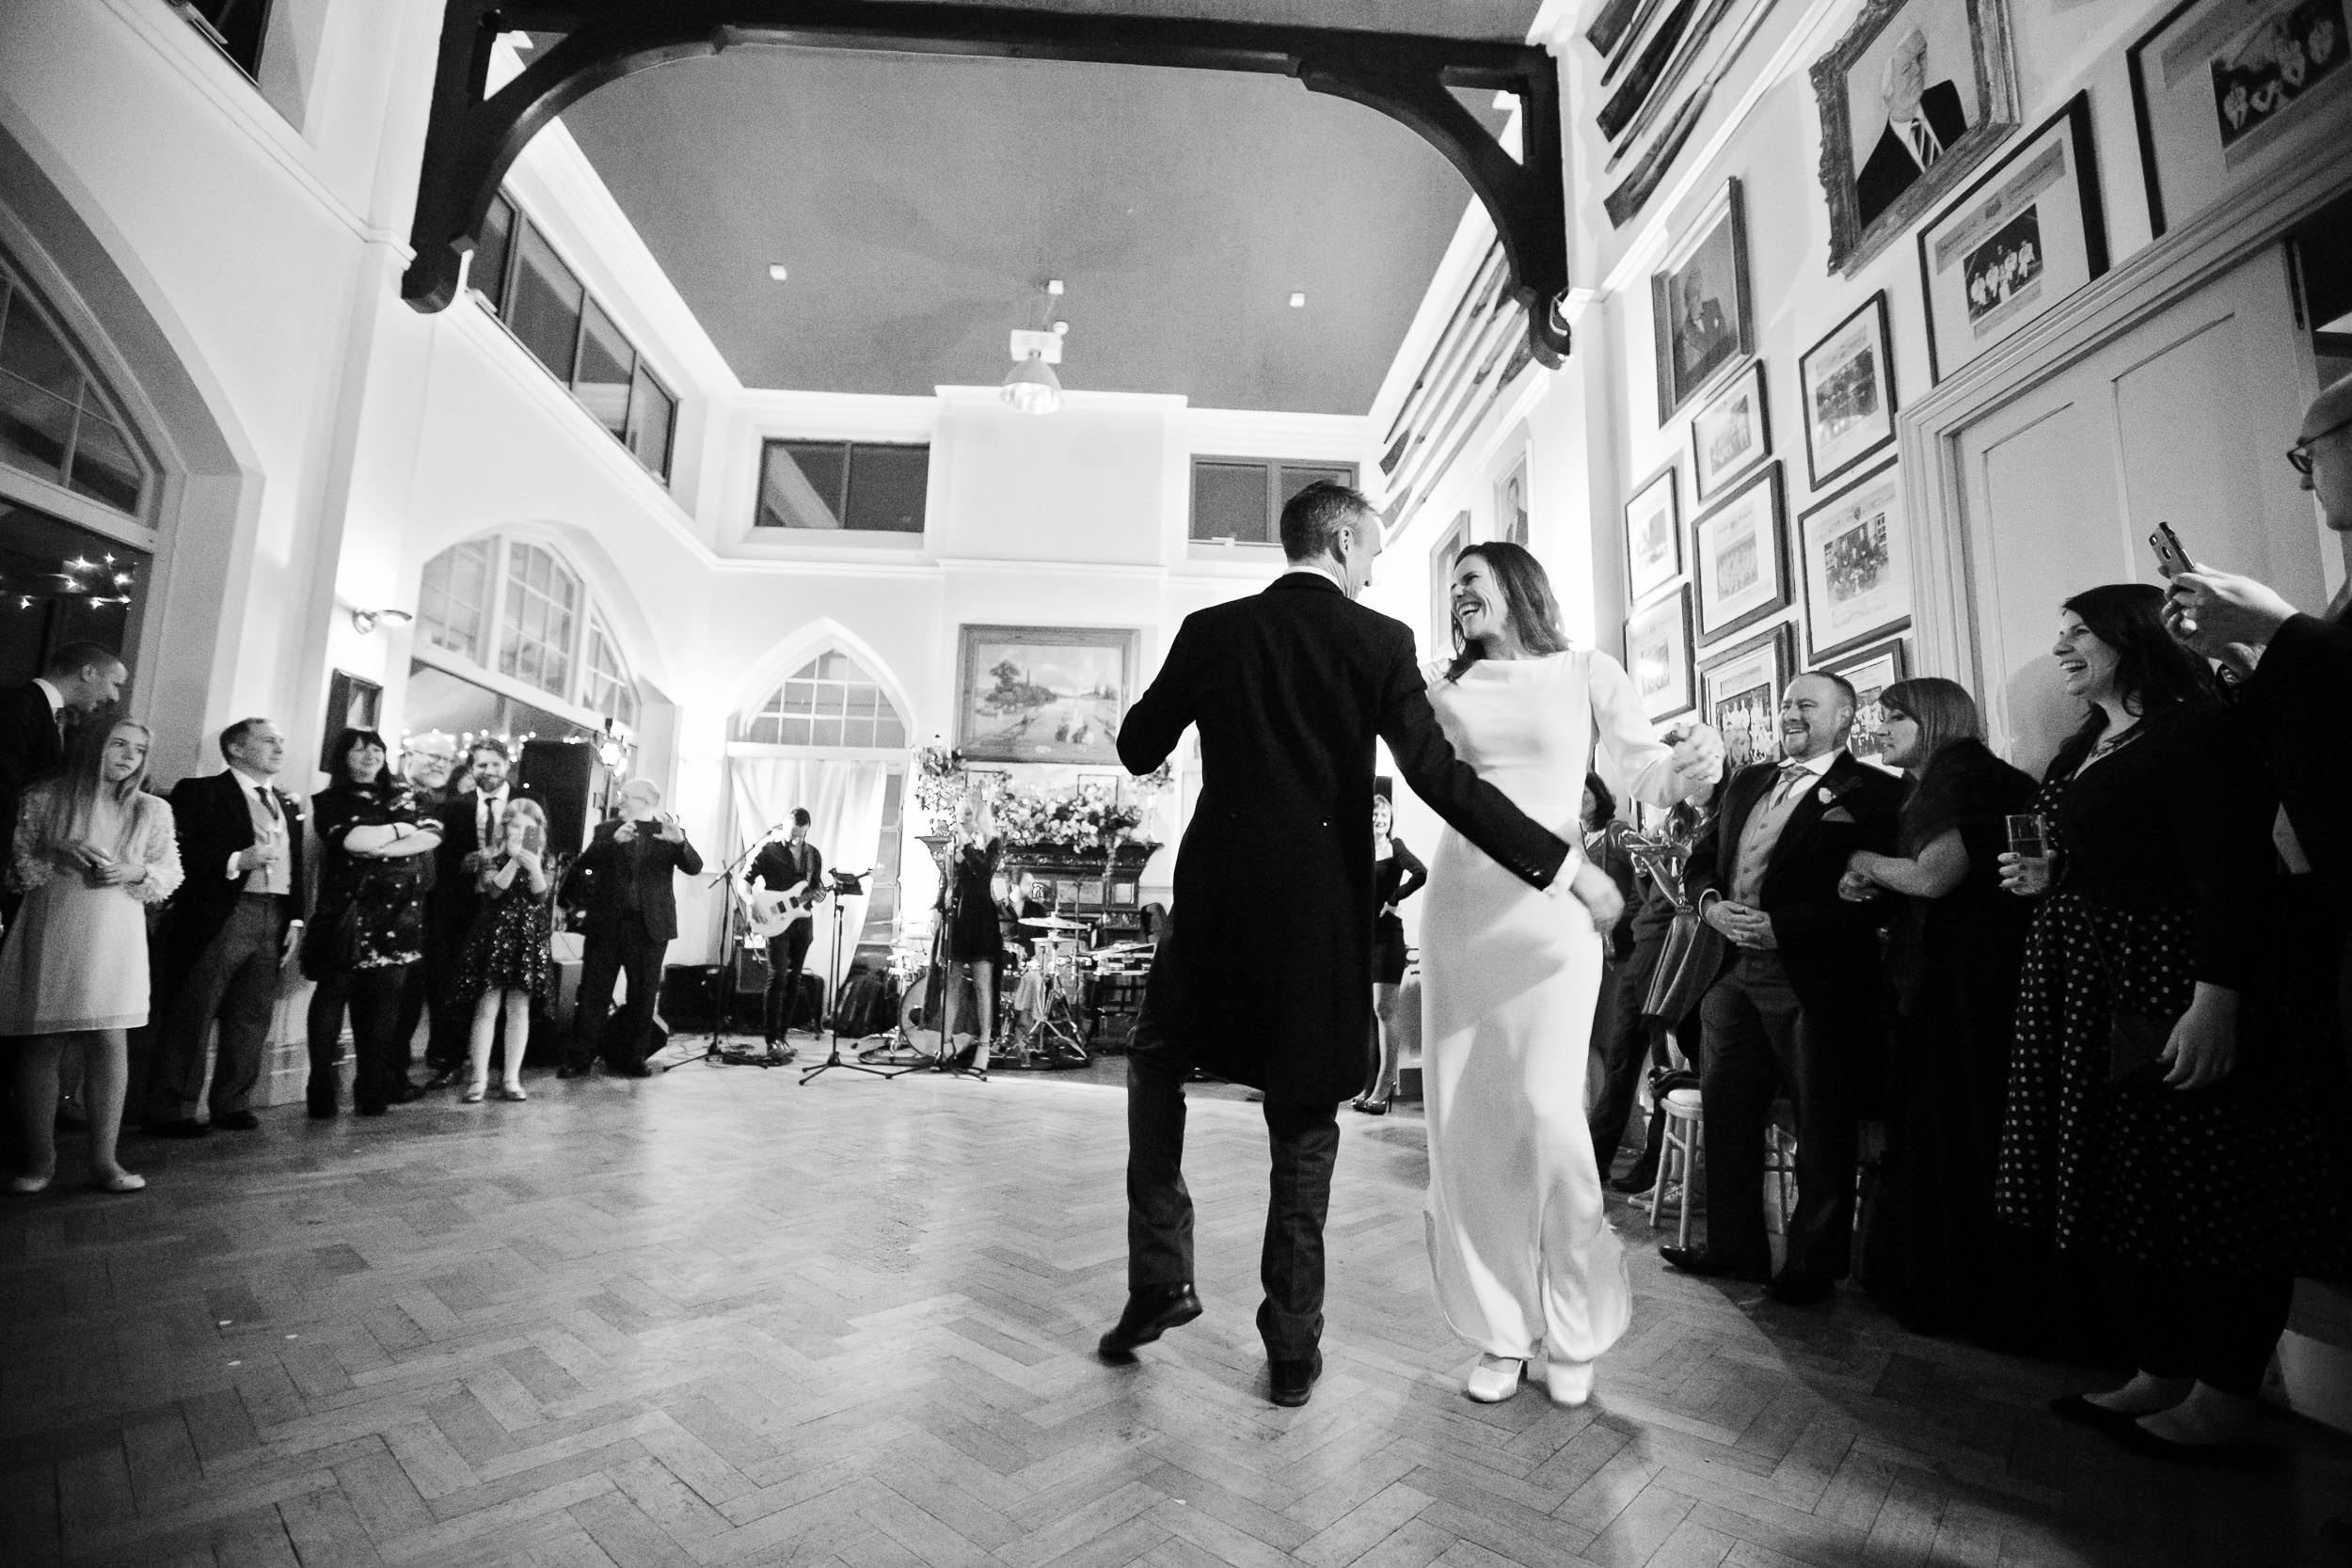 st-martin-in-the-field-wedding-photographer-london 129.jpg